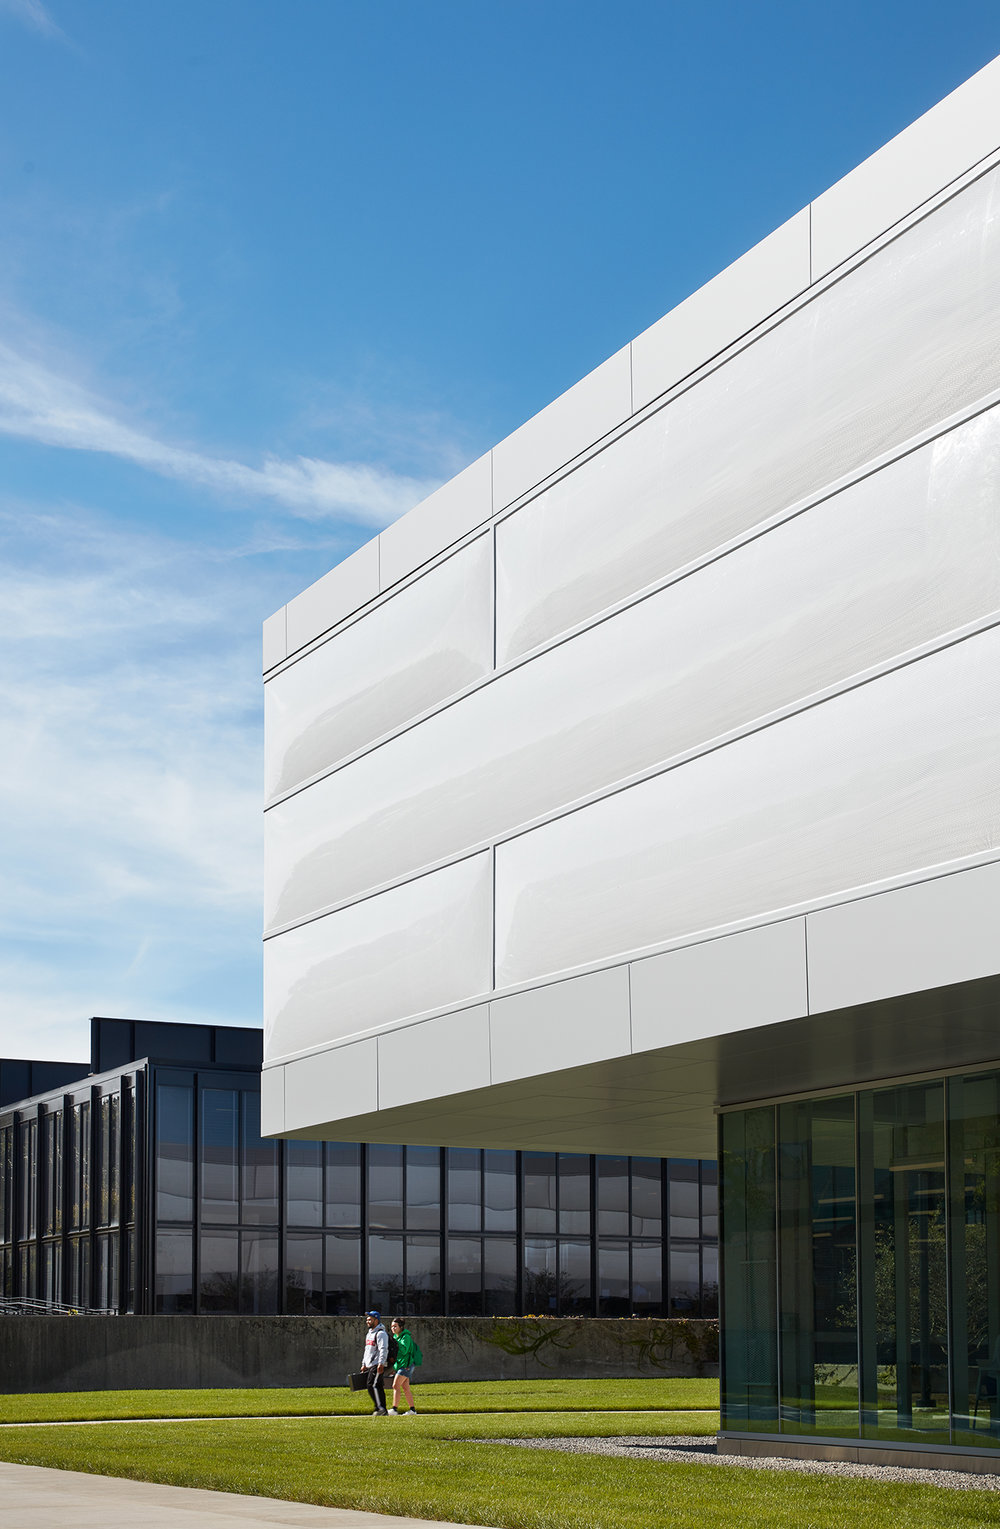 """PUBLICATIONS   Architectural Record , """"Ed Kaplan Family Institute for Innovation and Tech Entrepreneurship by John Ronan Architects""""      IIT Innovation Center  John Ronan Architects  Chicago, IL   View Full Project    Steve Hall"""